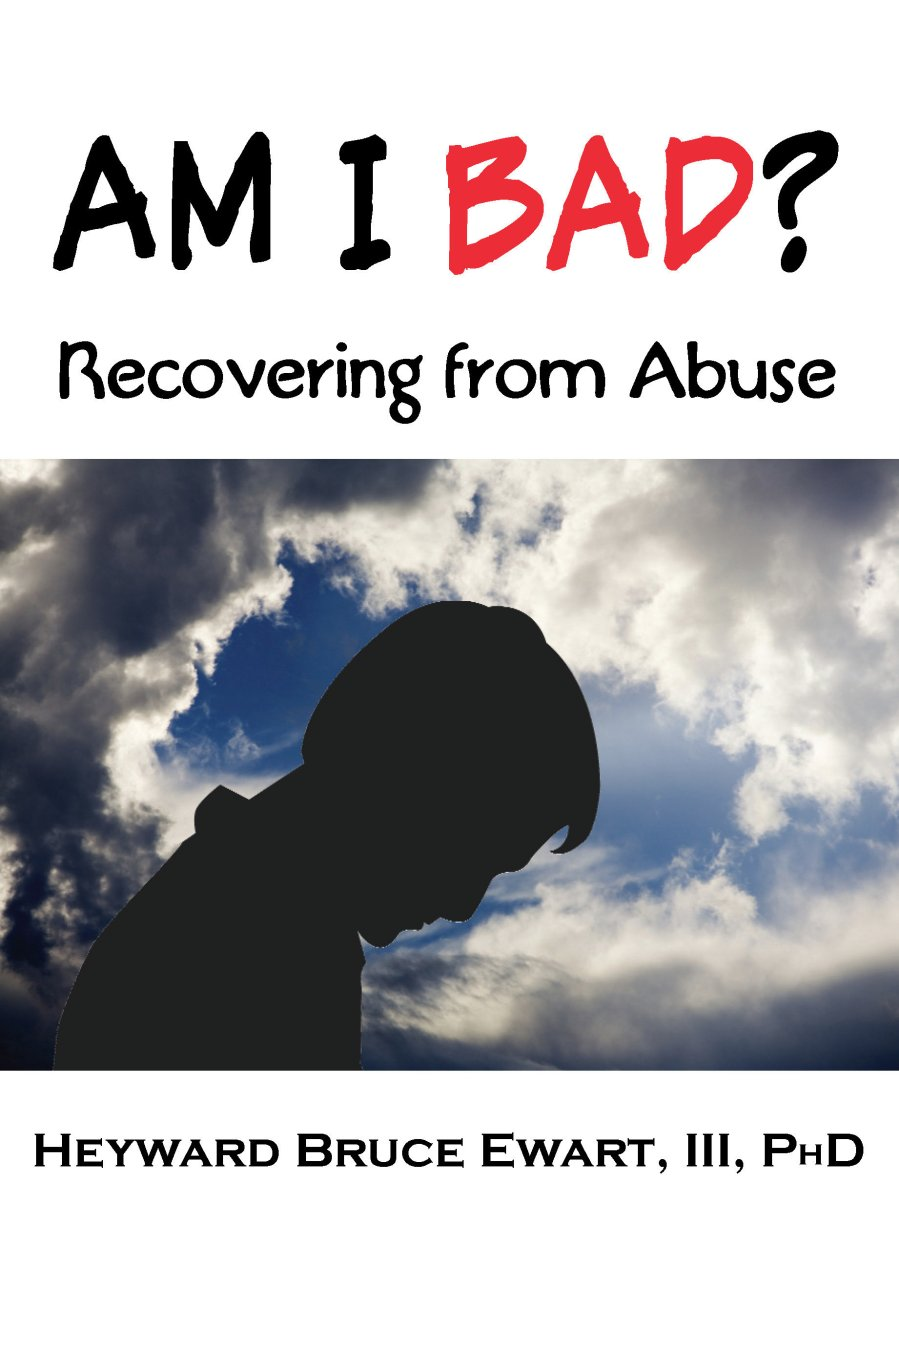 Am I Bad?: Recovering from Abuse 978-1-932690-33-0